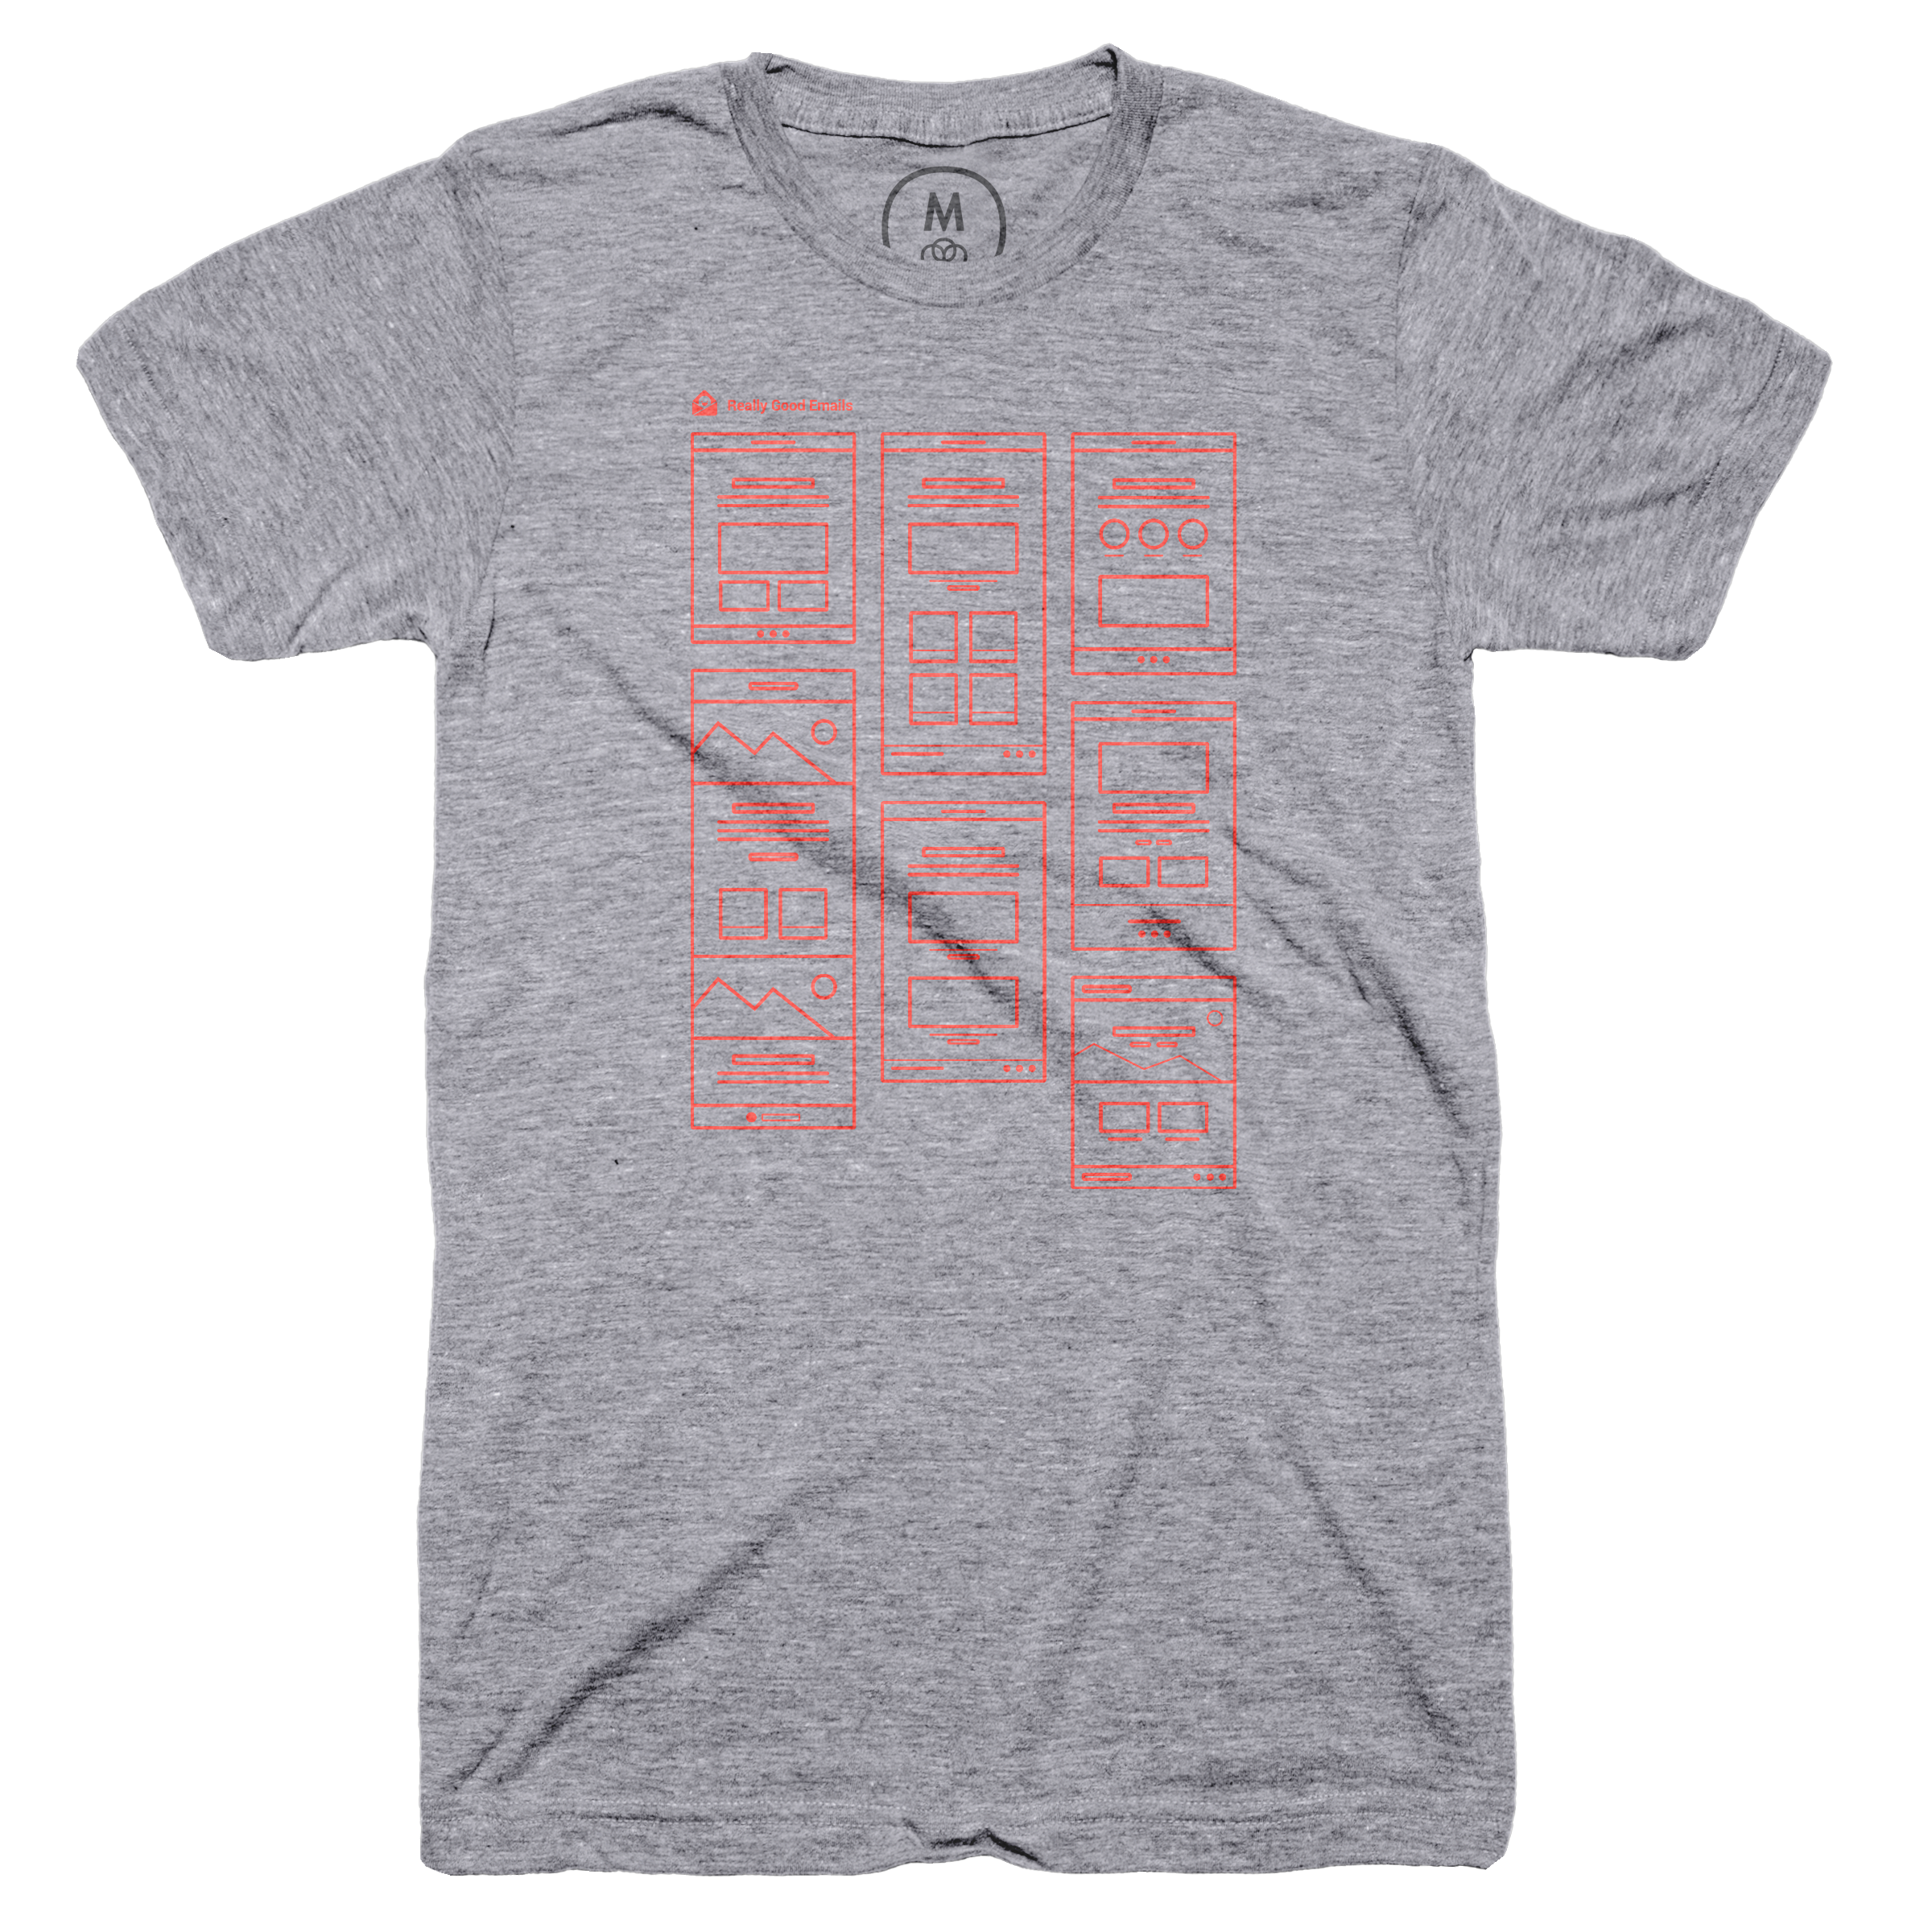 Design Better. Spam Never. Premium Heather (Men's)